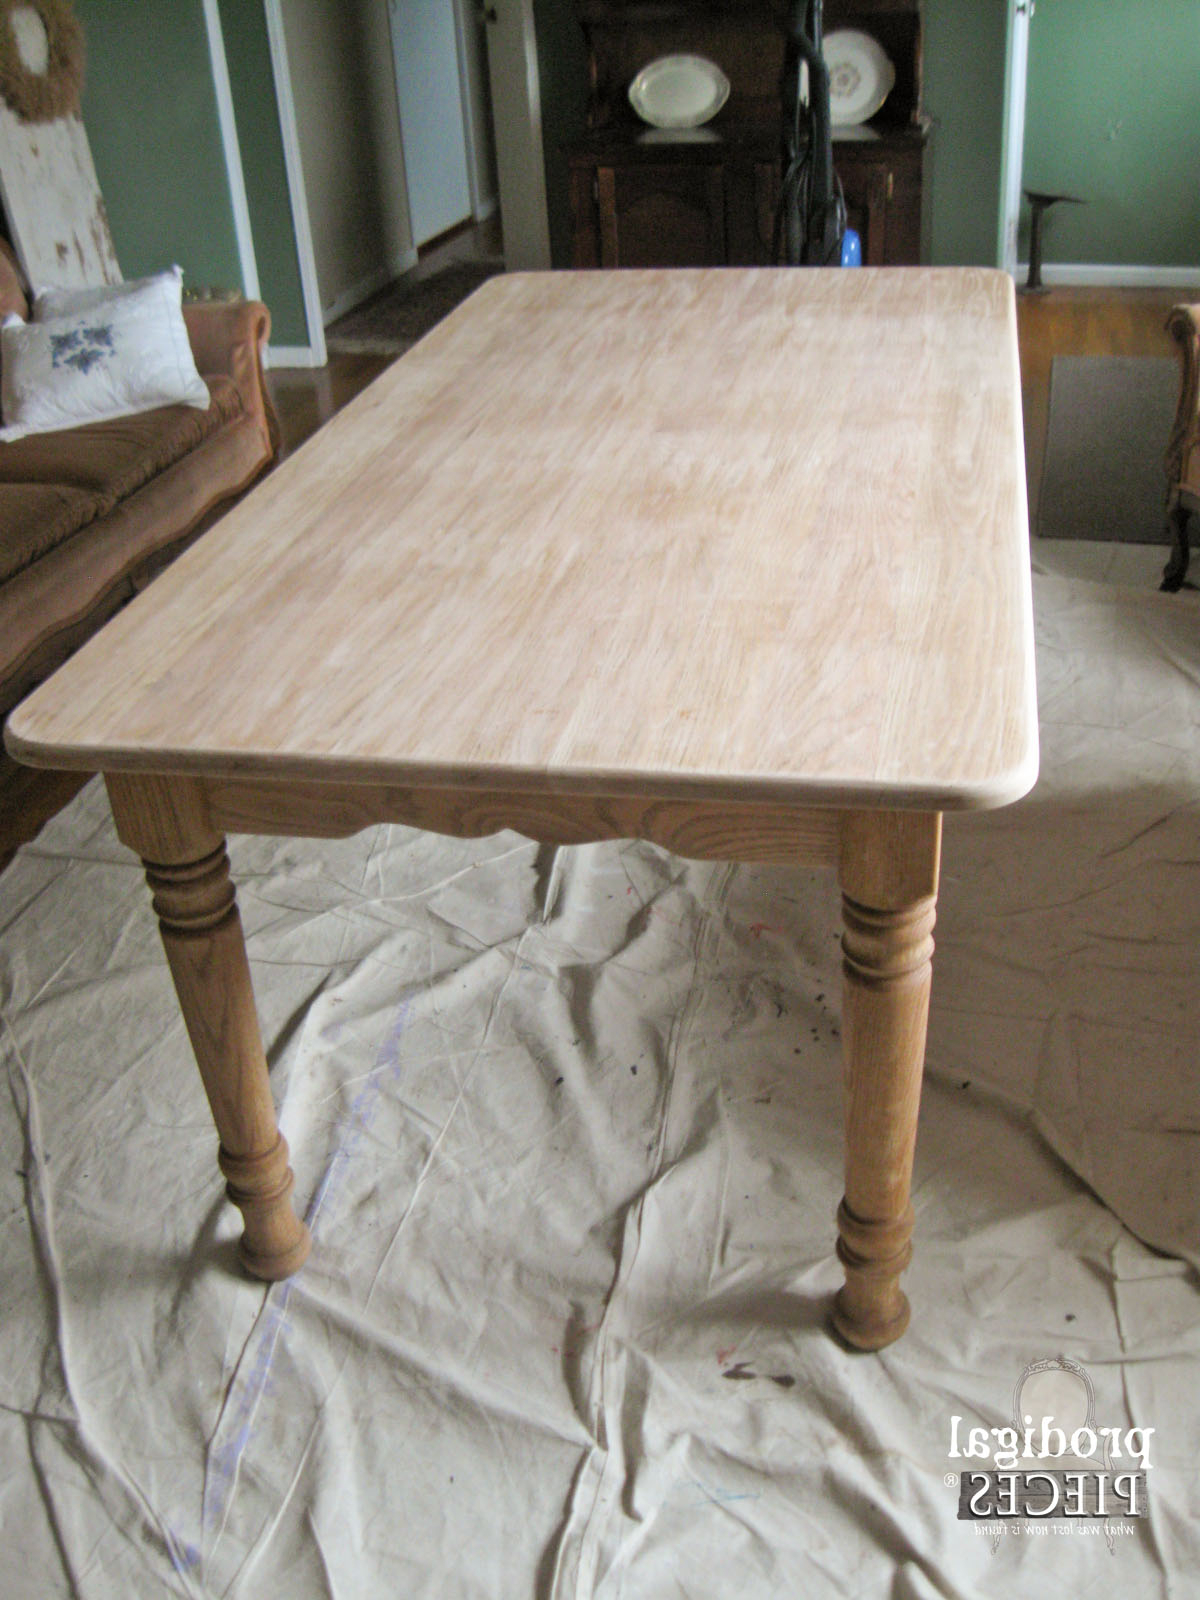 Limewash Coffee Tables Intended For Famous Whitewashed (Or Limewashed) Wood – Prodigal Pieces (View 10 of 20)